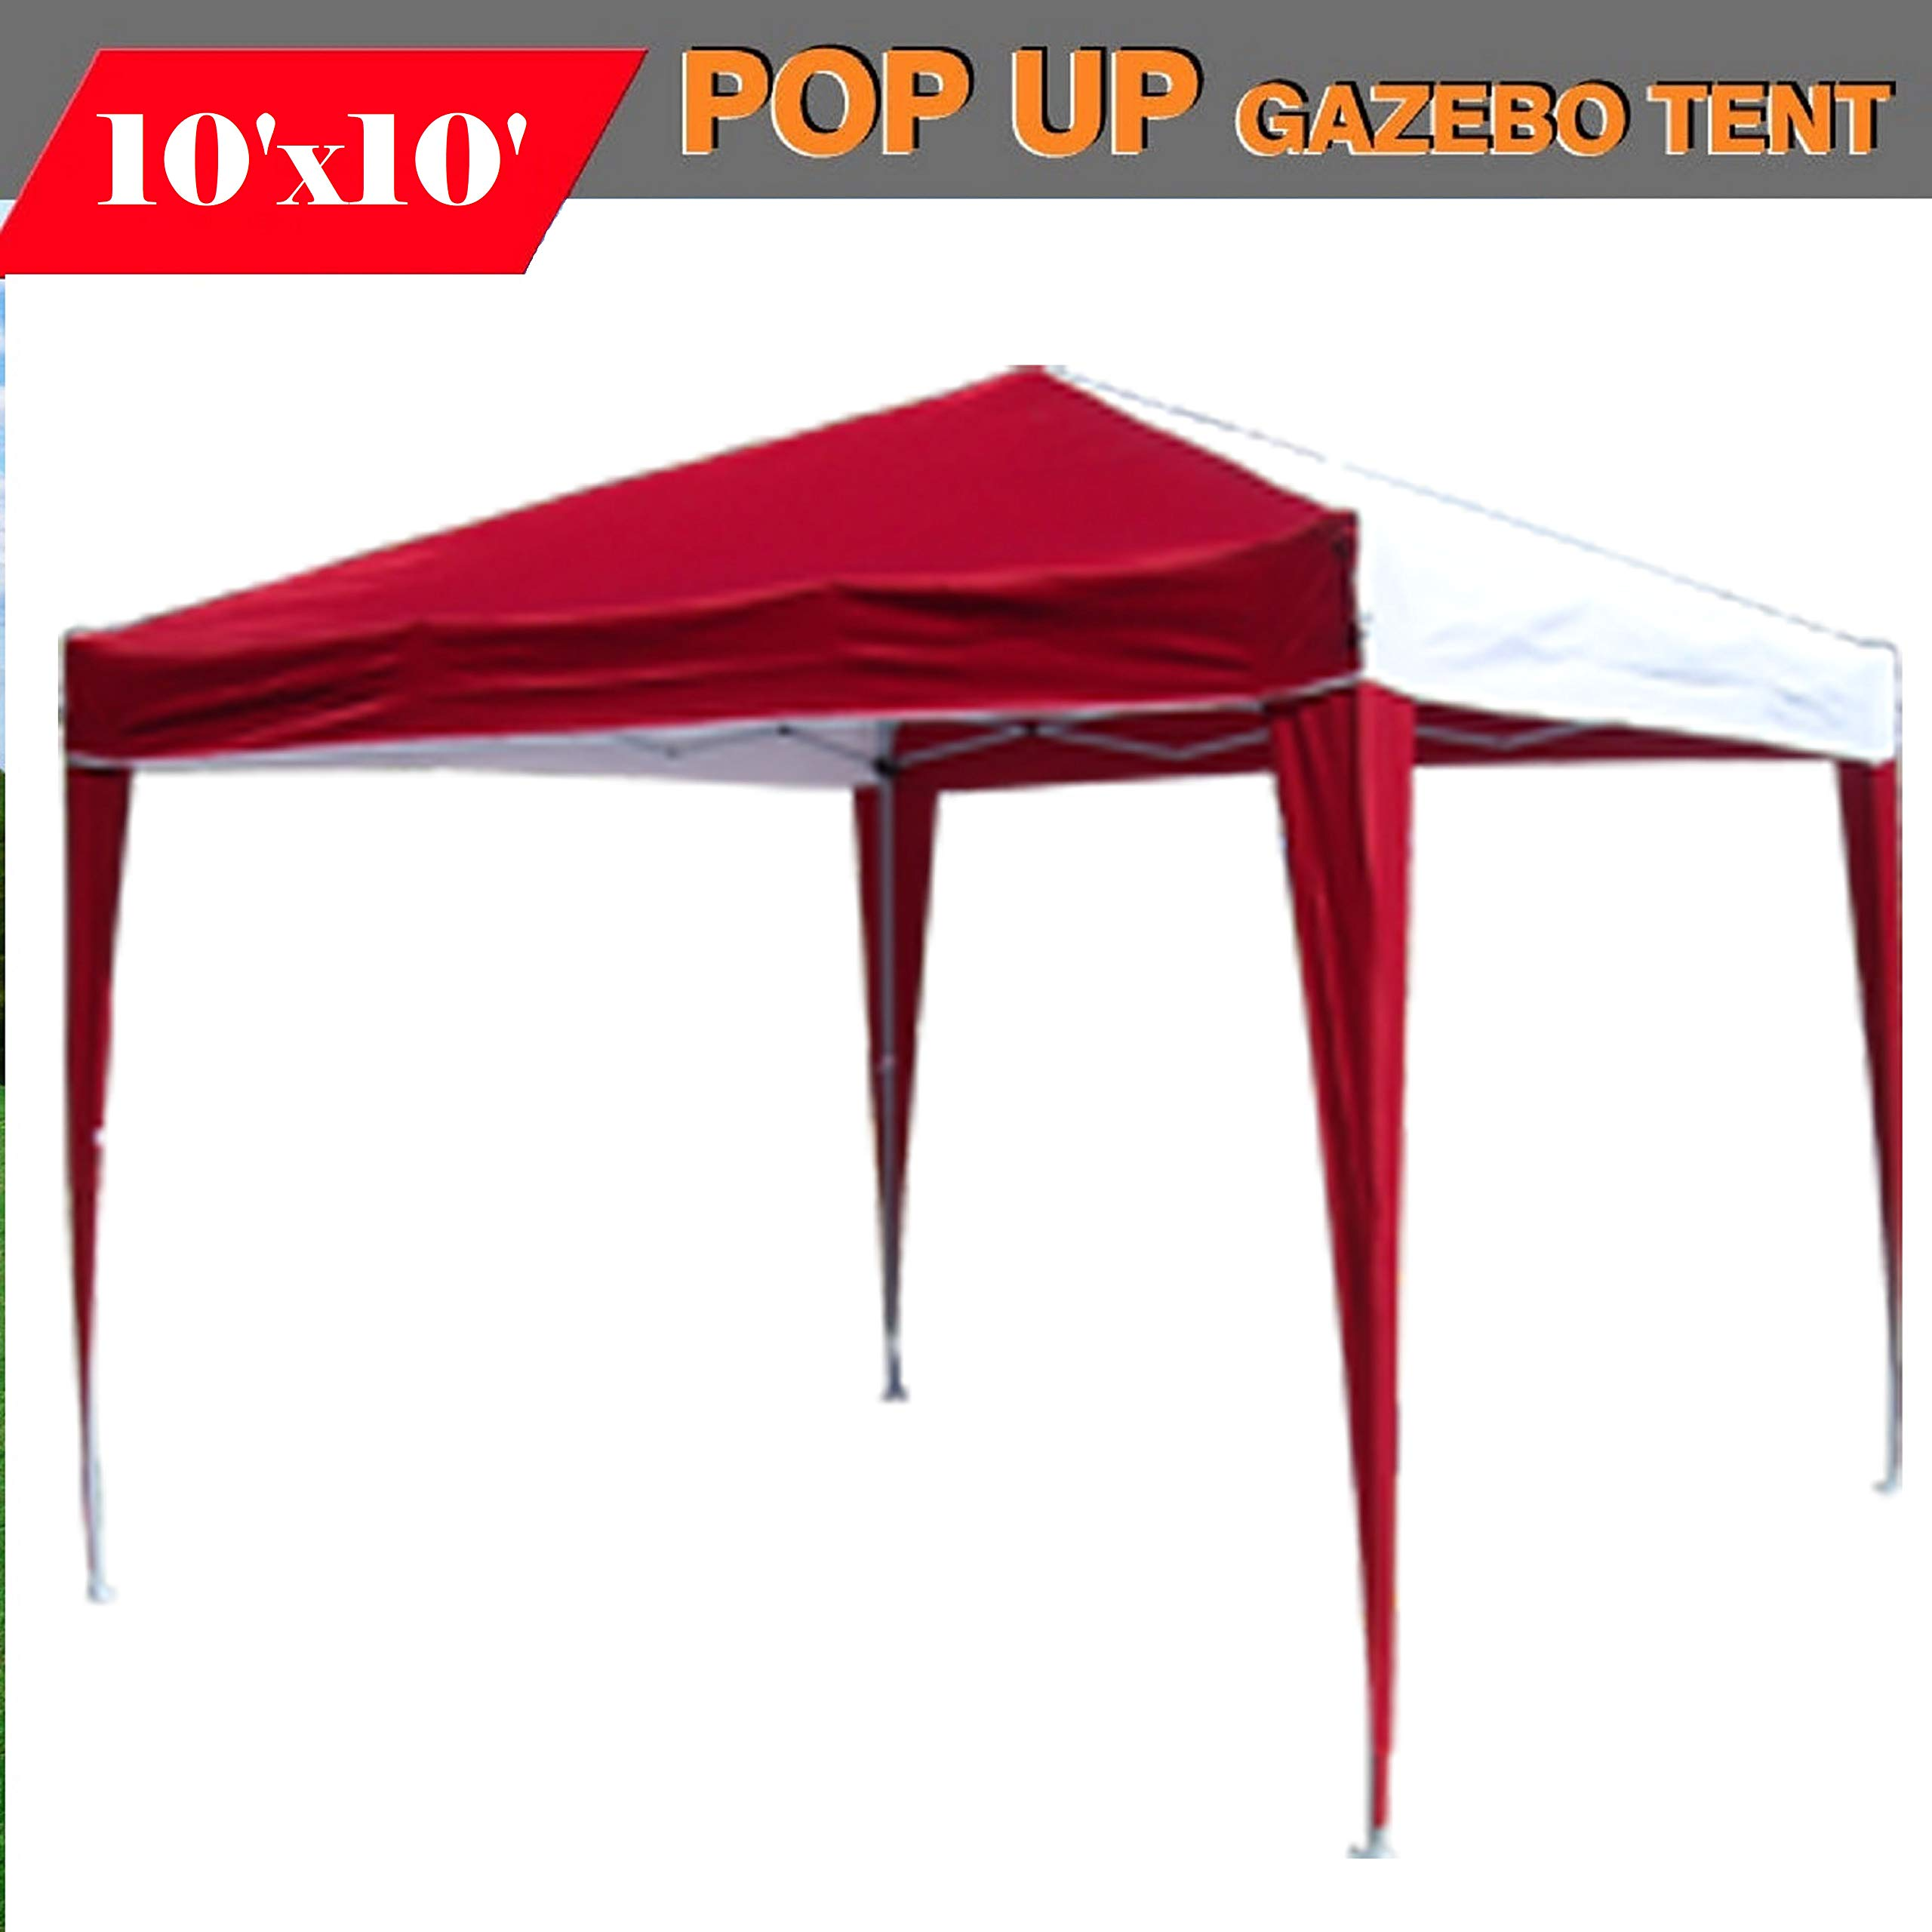 DELTA Canopies 10'x10' Pop up Canopy Party Tent Instant Gazebo Ez CS N - Red/white